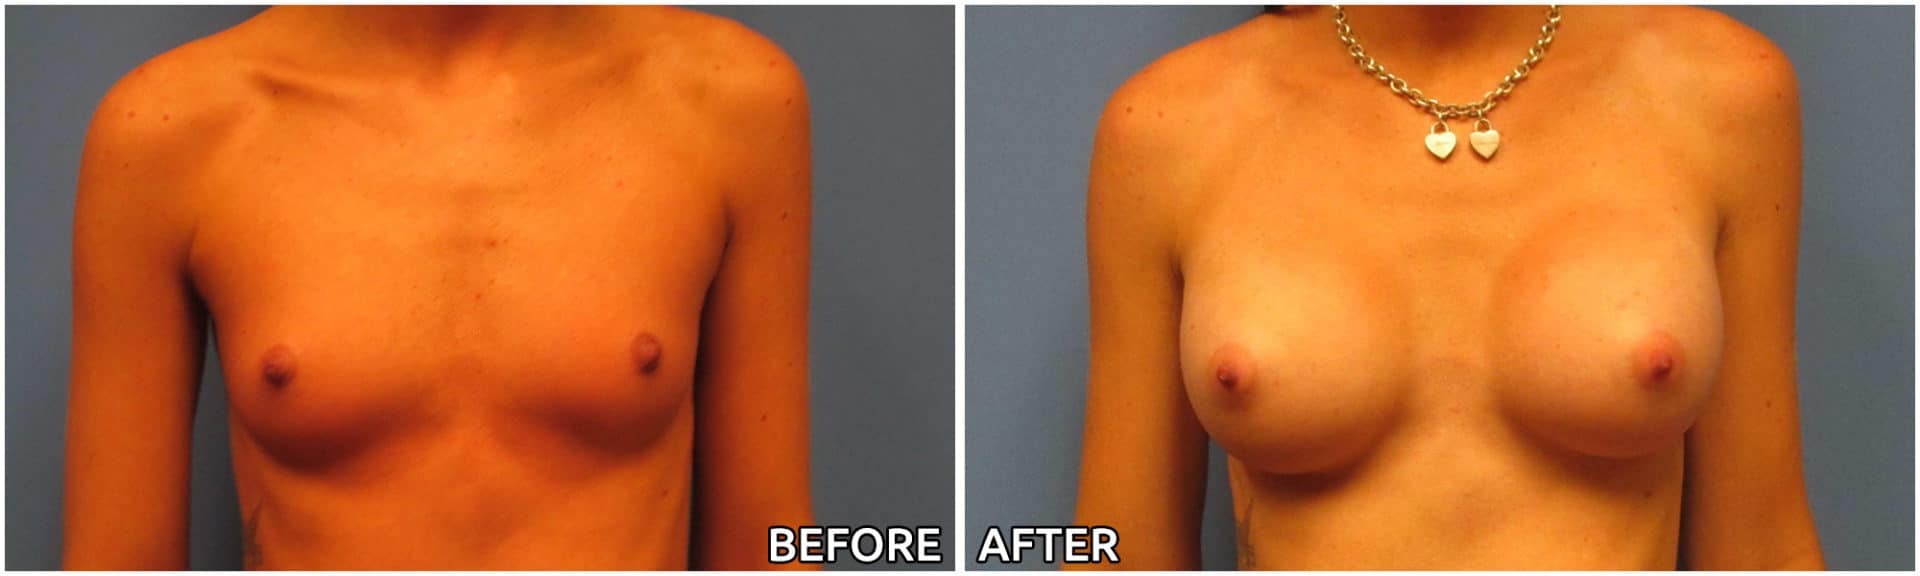 breast-augmentation34